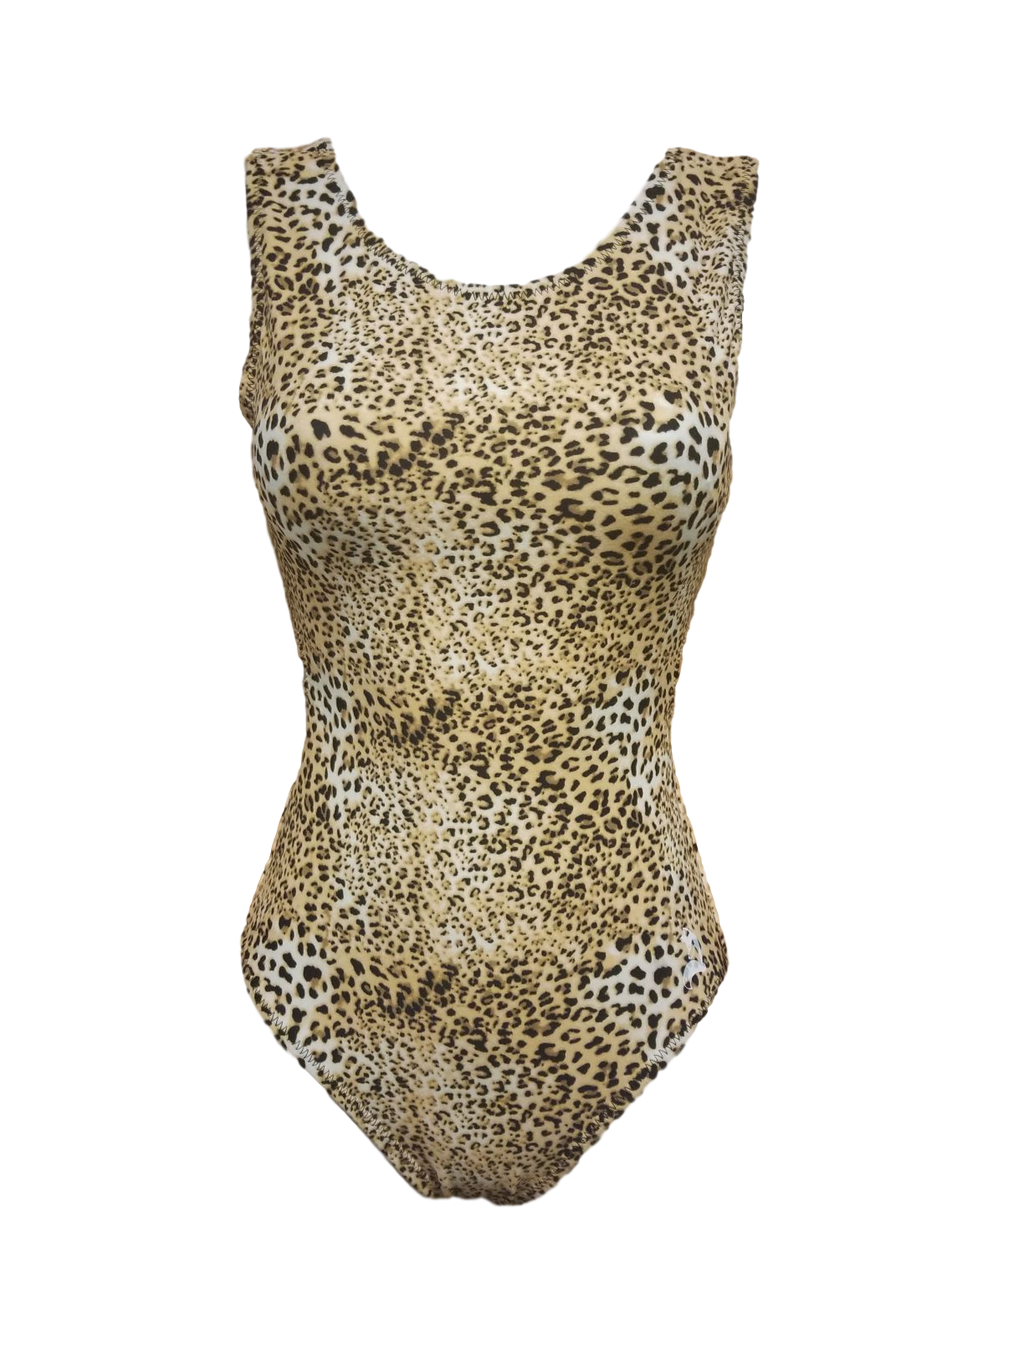 Ultra soft cheetah print leotard for youth and adult